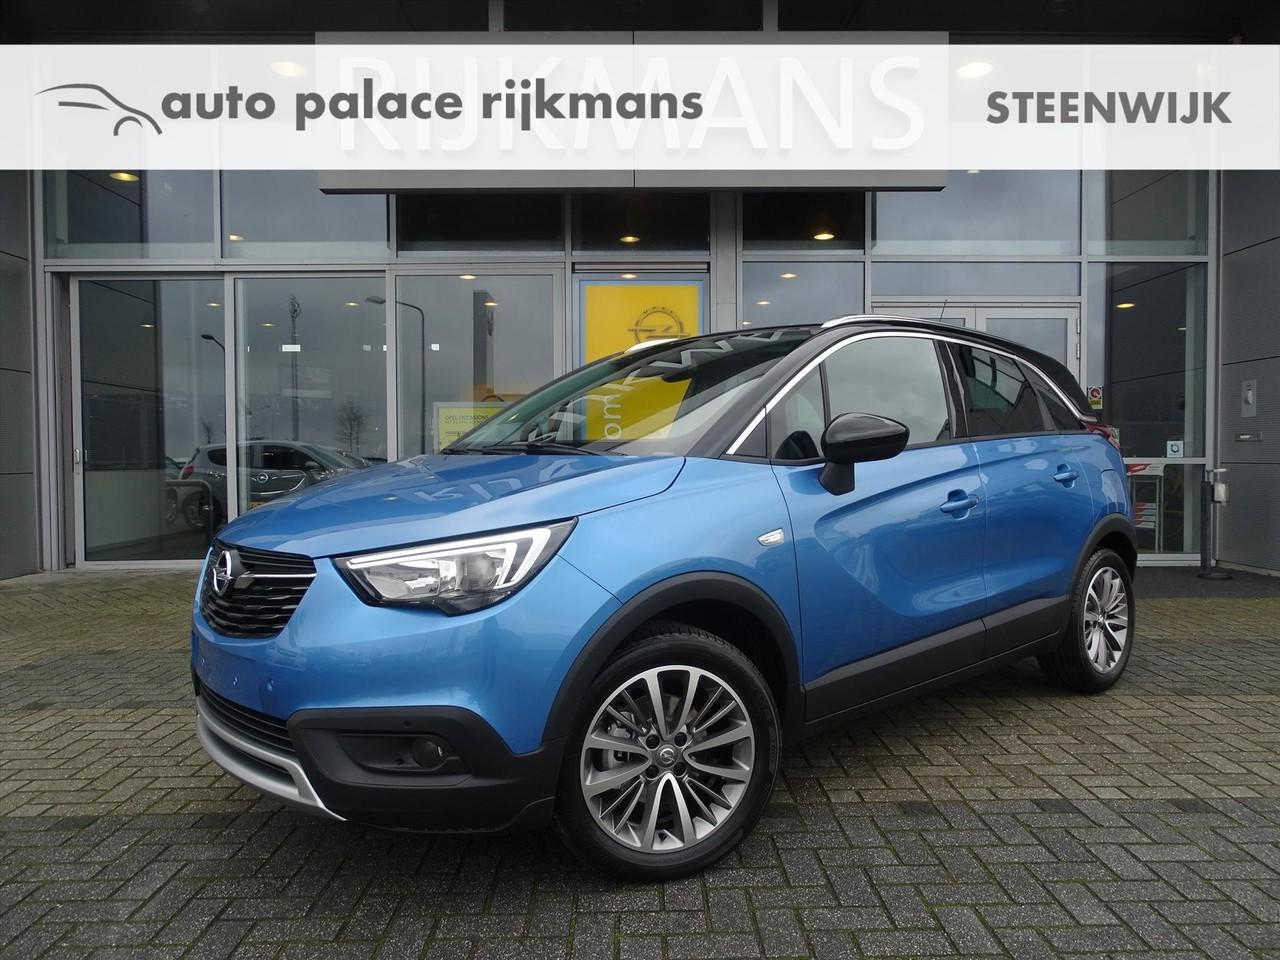 "Opel Crossland Innovation 1.2t 110 pk - agr - navi - 17"" lm - convenience pack"